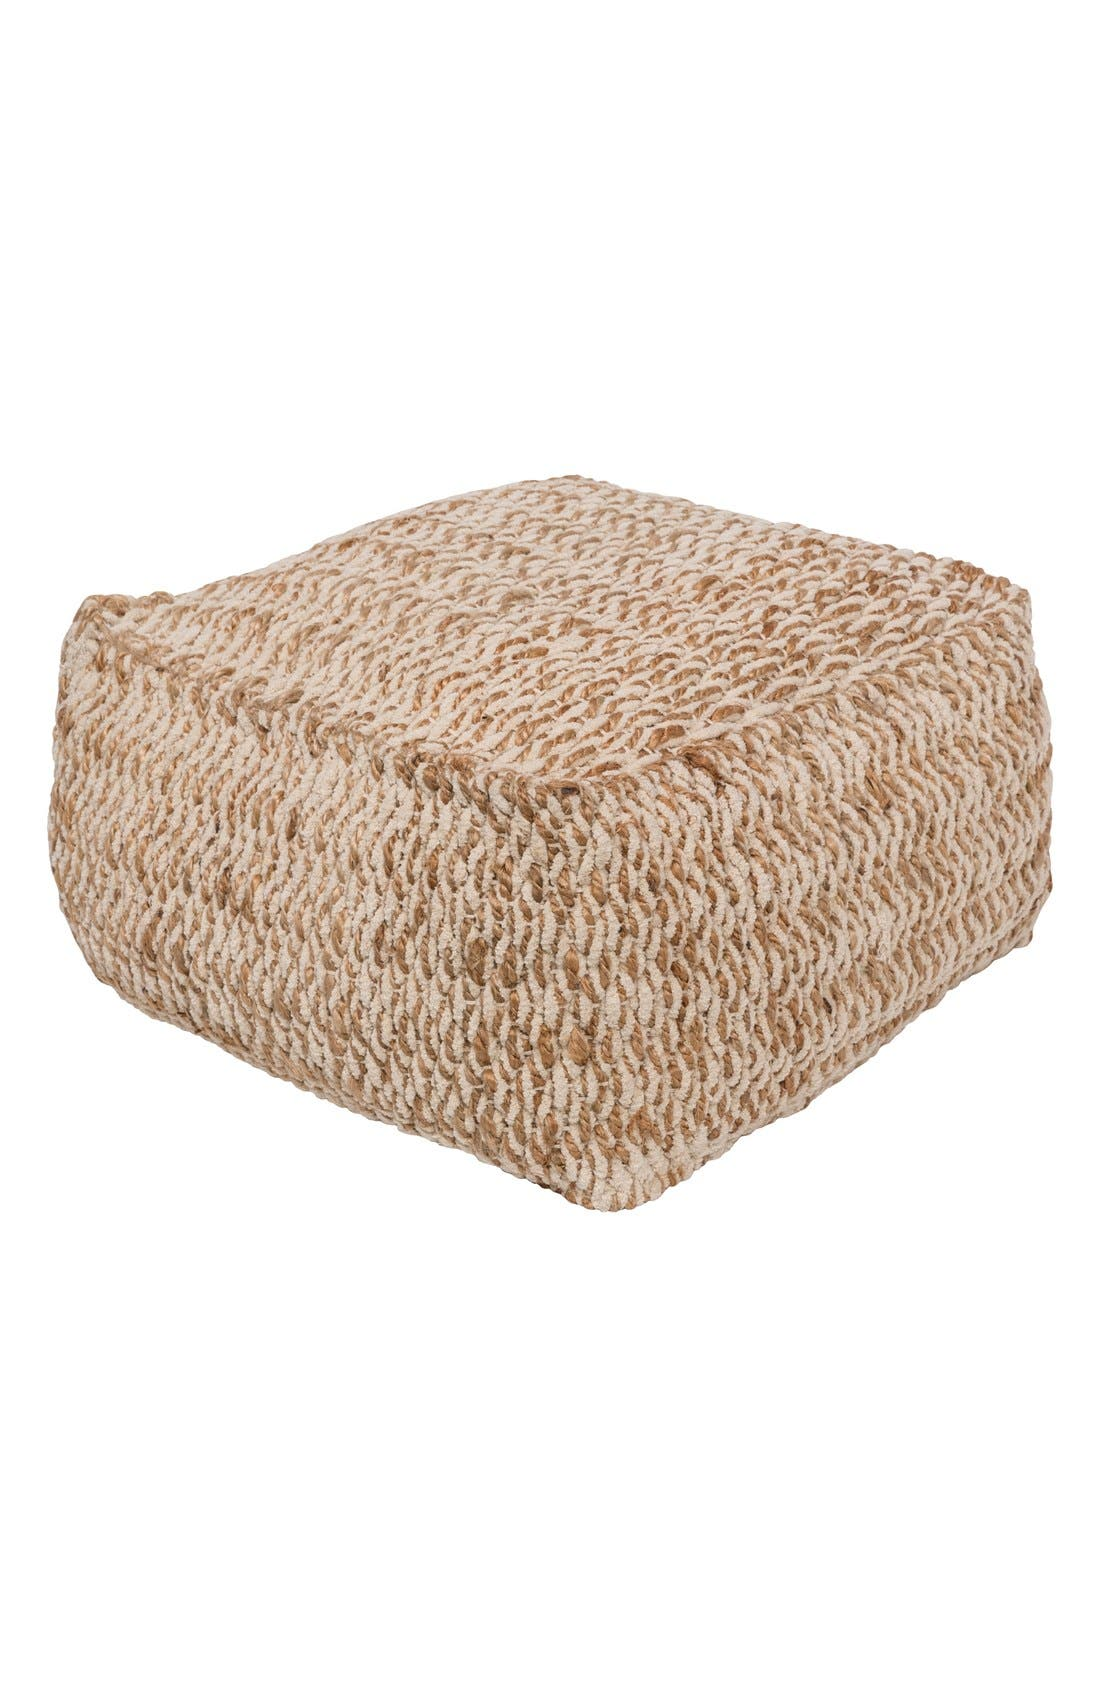 'Oak Cove' Jute & Cotton Pouf,                         Main,                         color, 250